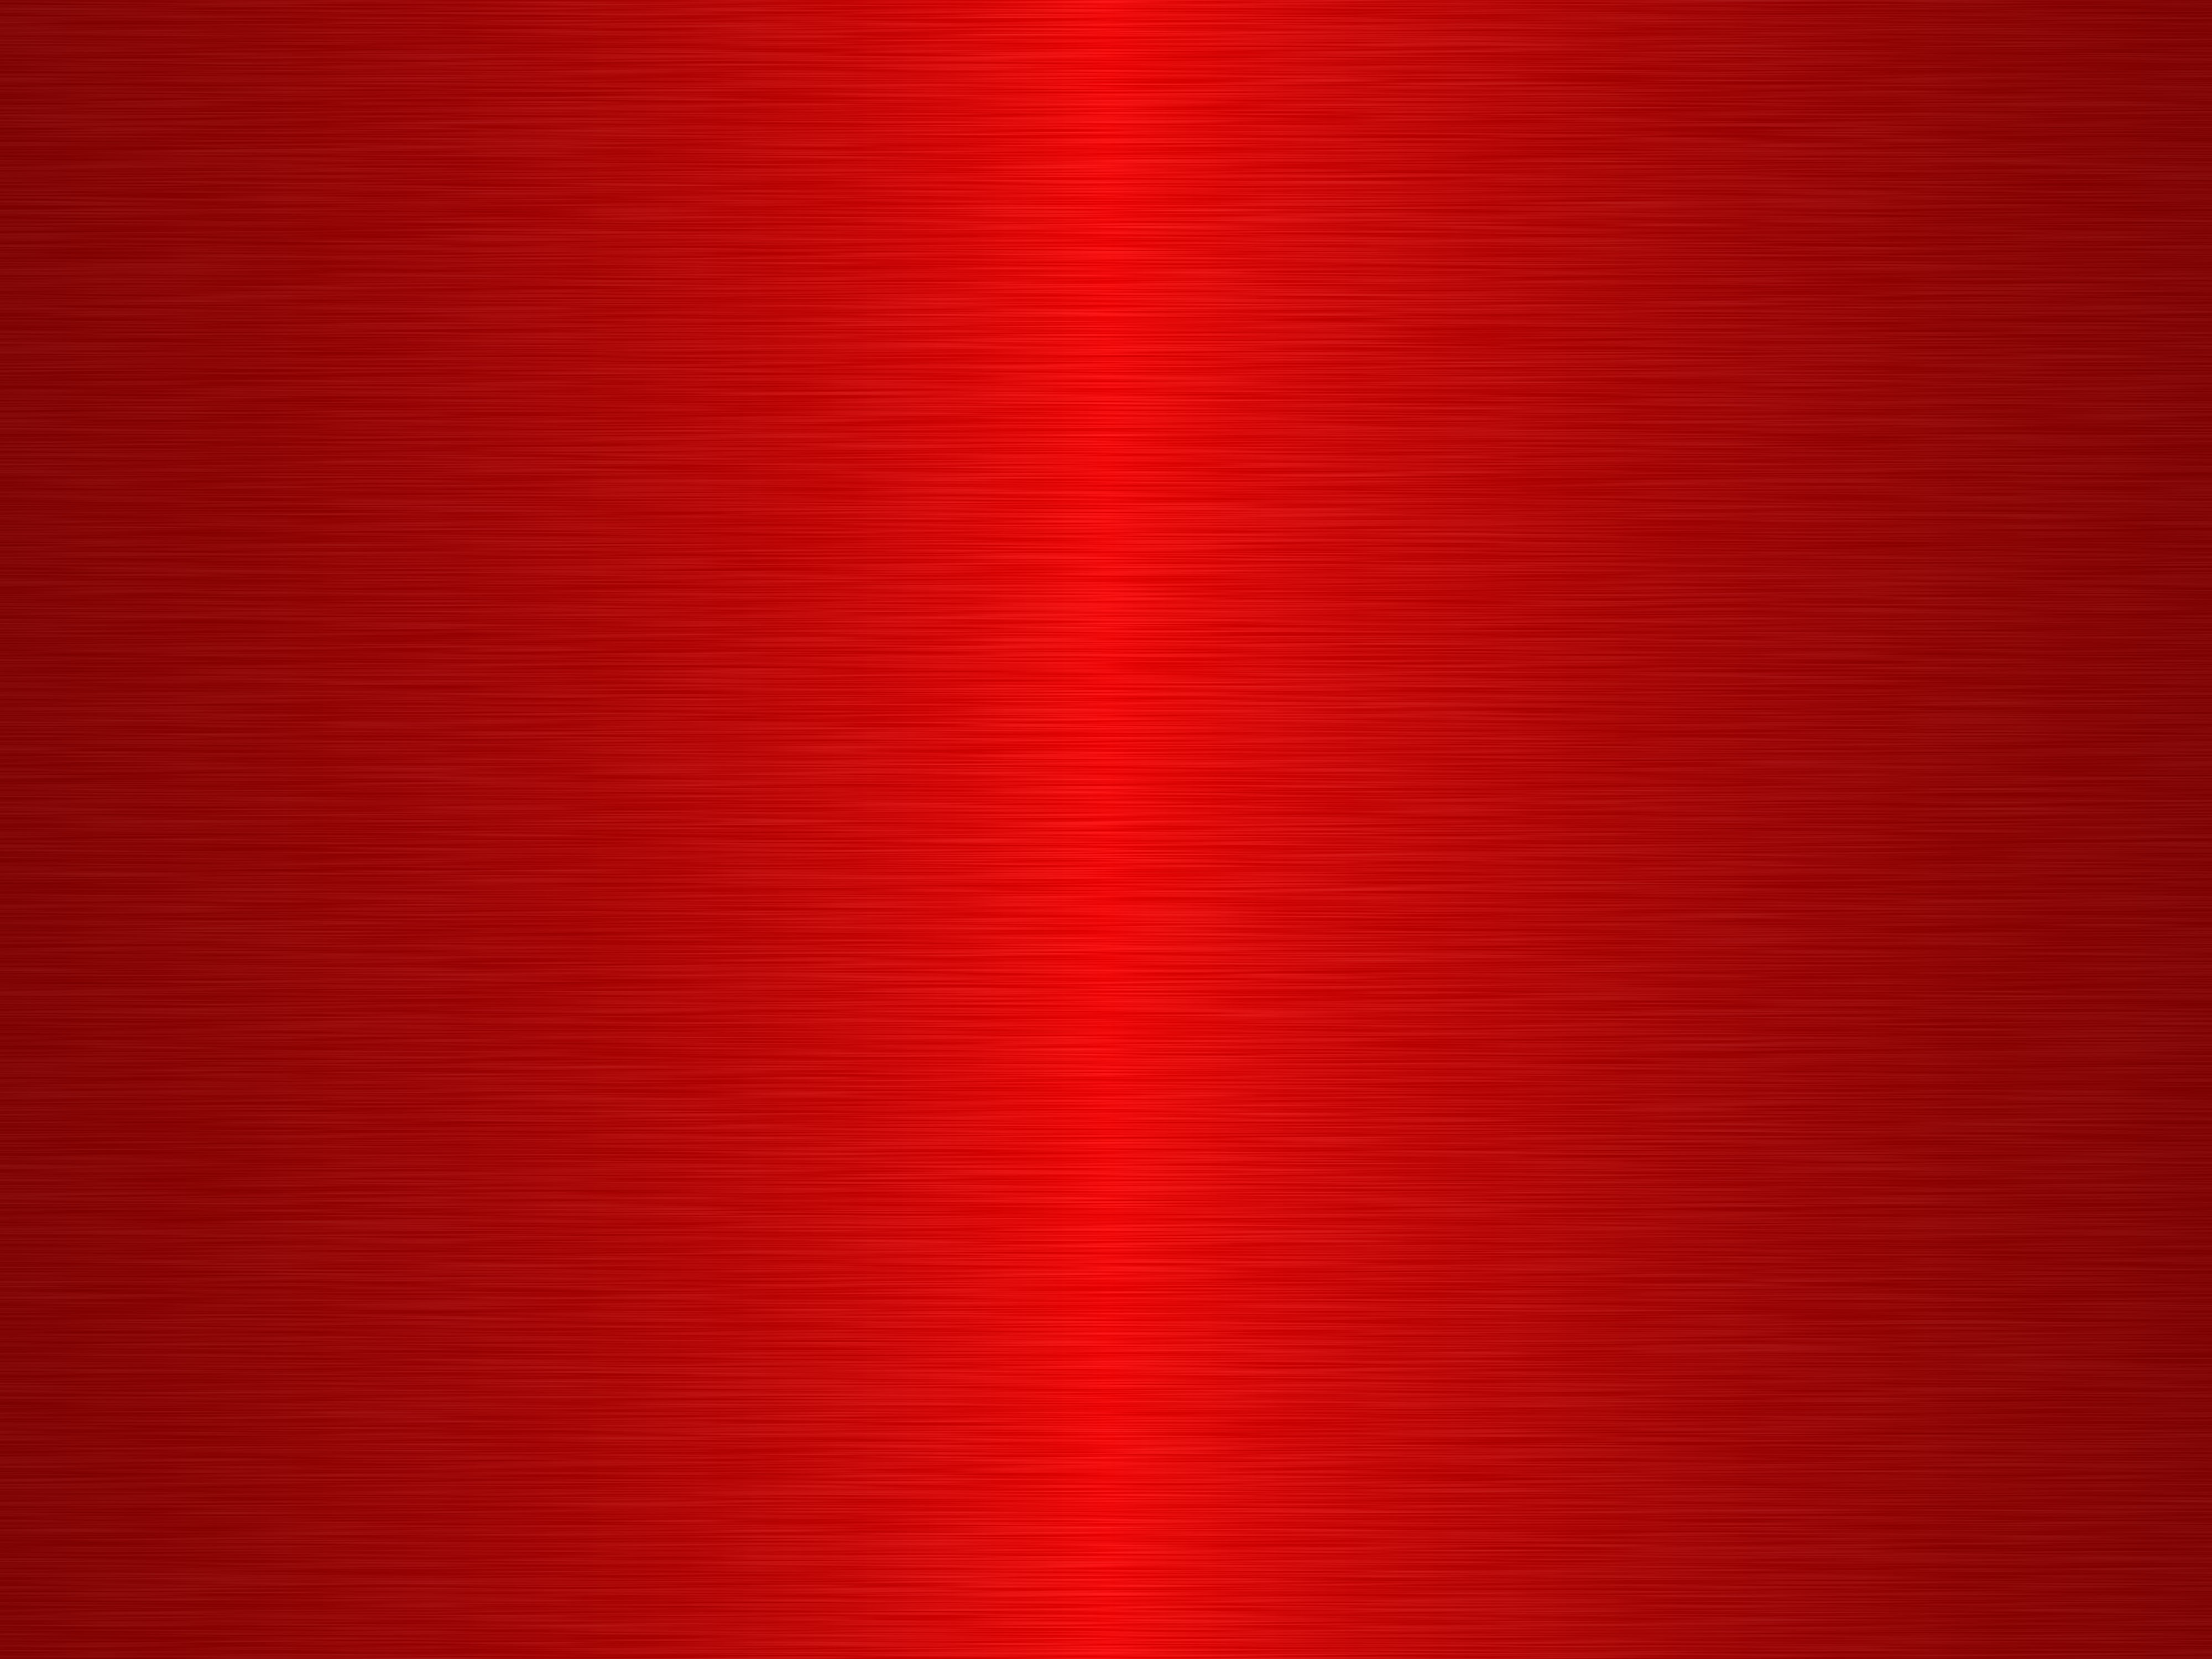 Simple Red Texture Pattern Wallpaper, HD Abstract 4K Wallpapers, Images,  Photos and Background